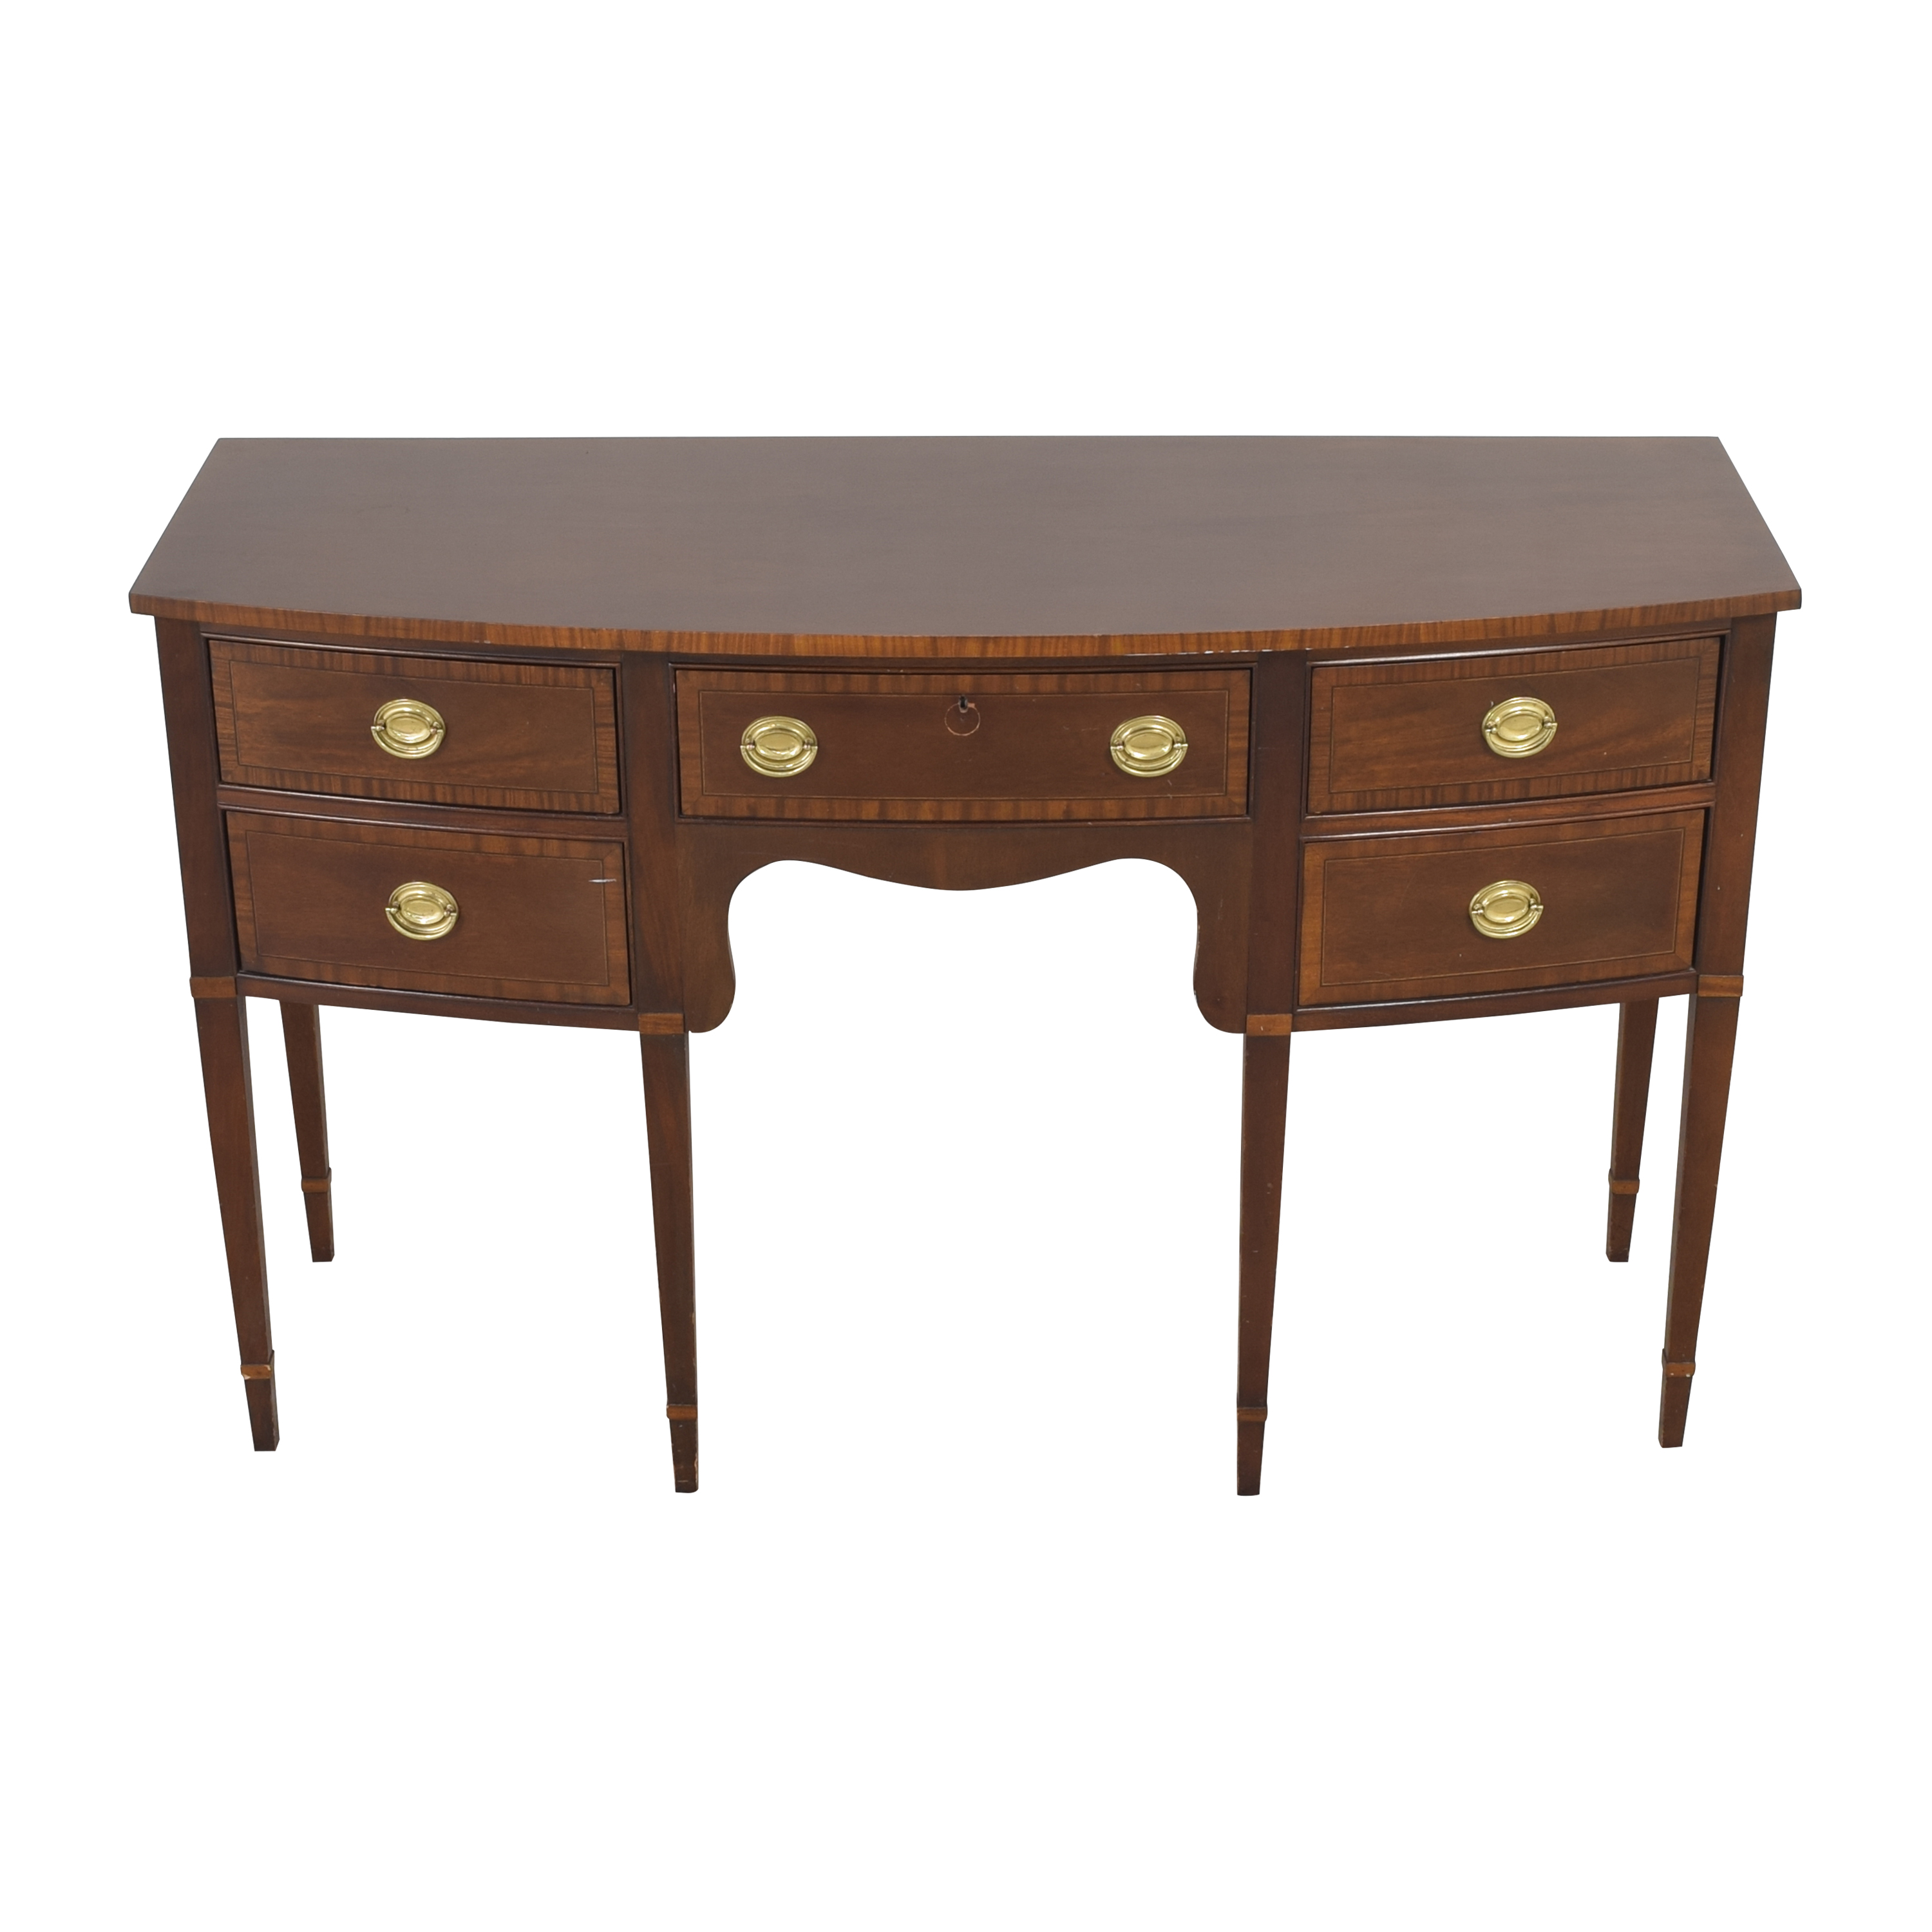 Councill Councill Hepplewhite-Style Sideboard nj